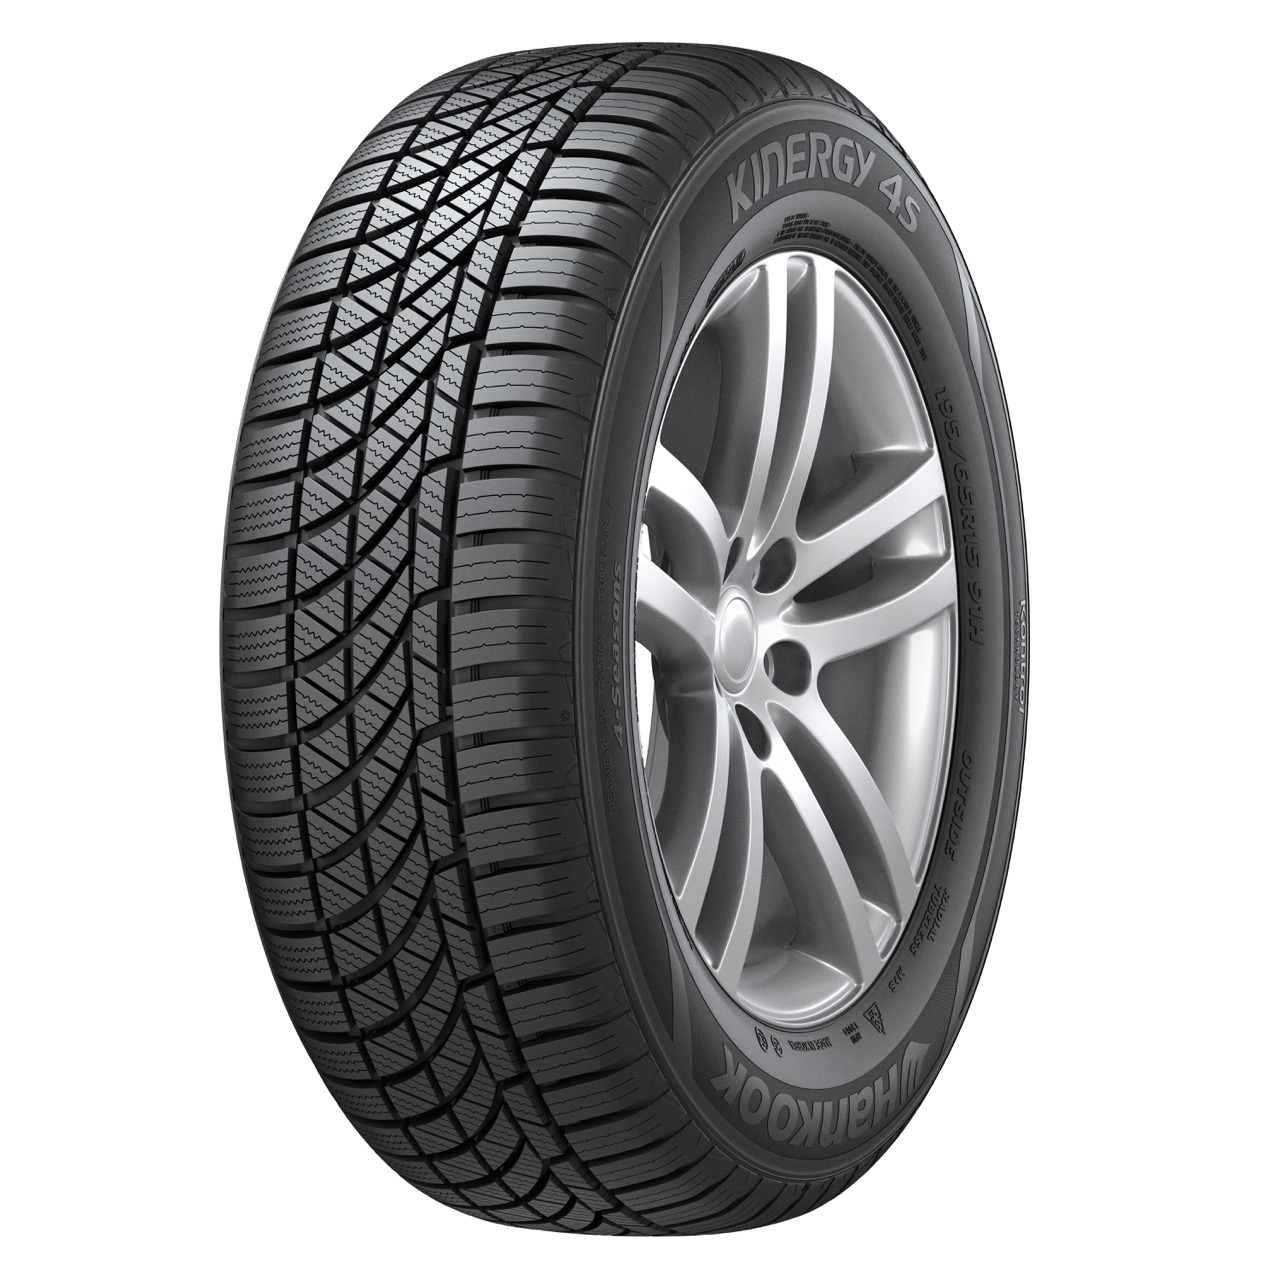 Hankook Kynergy 4S